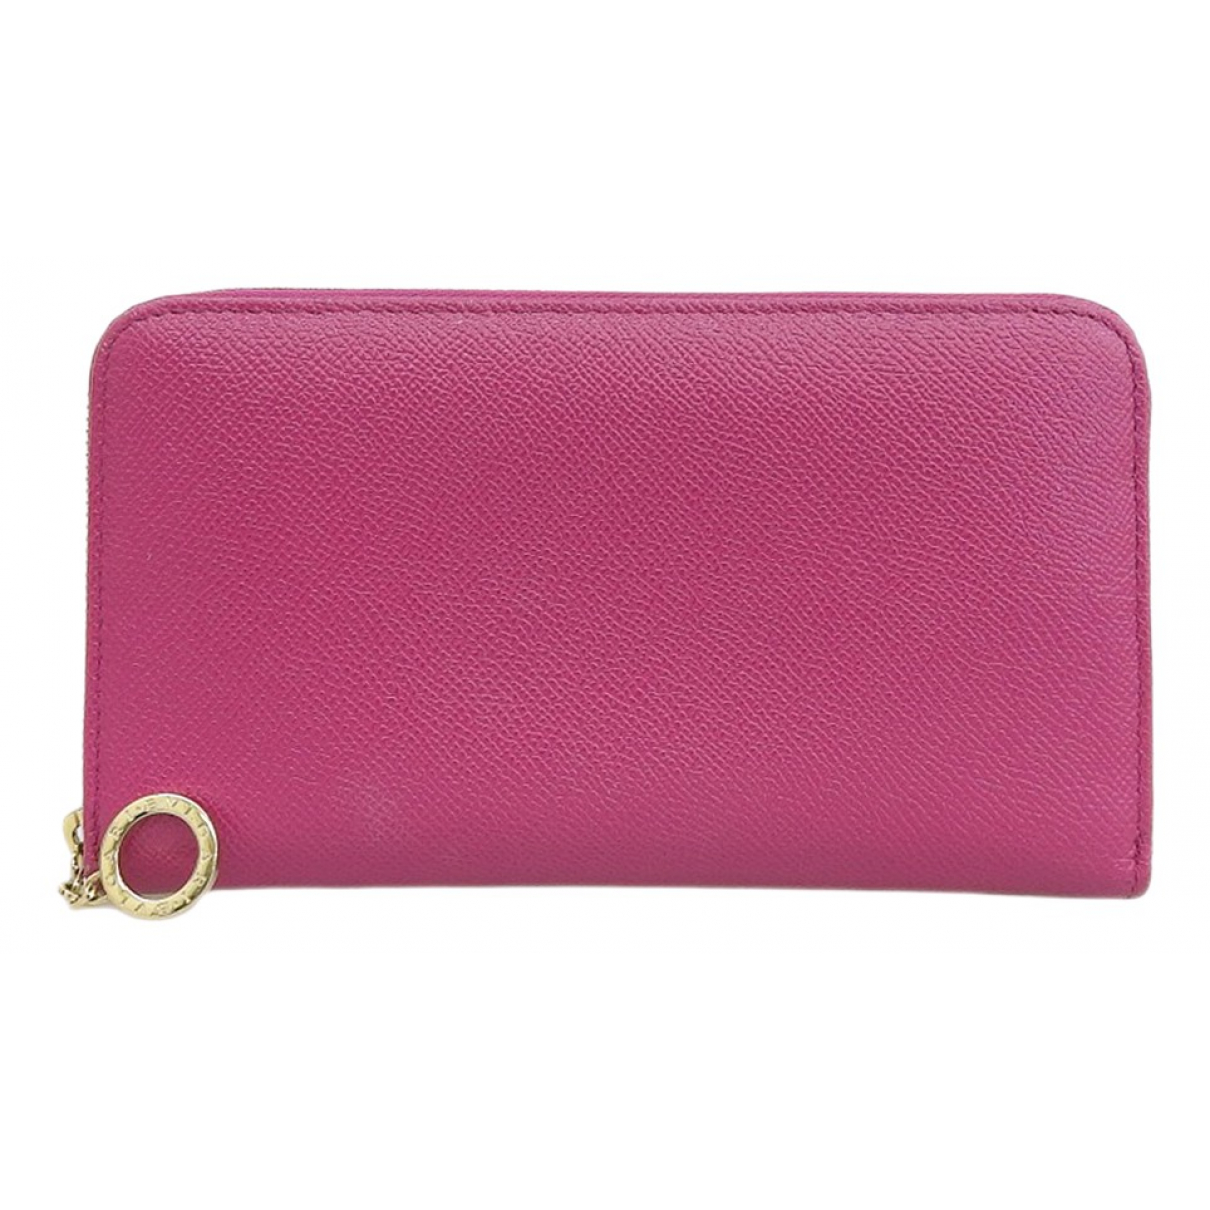 Bvlgari N Purple Leather wallet for Women N